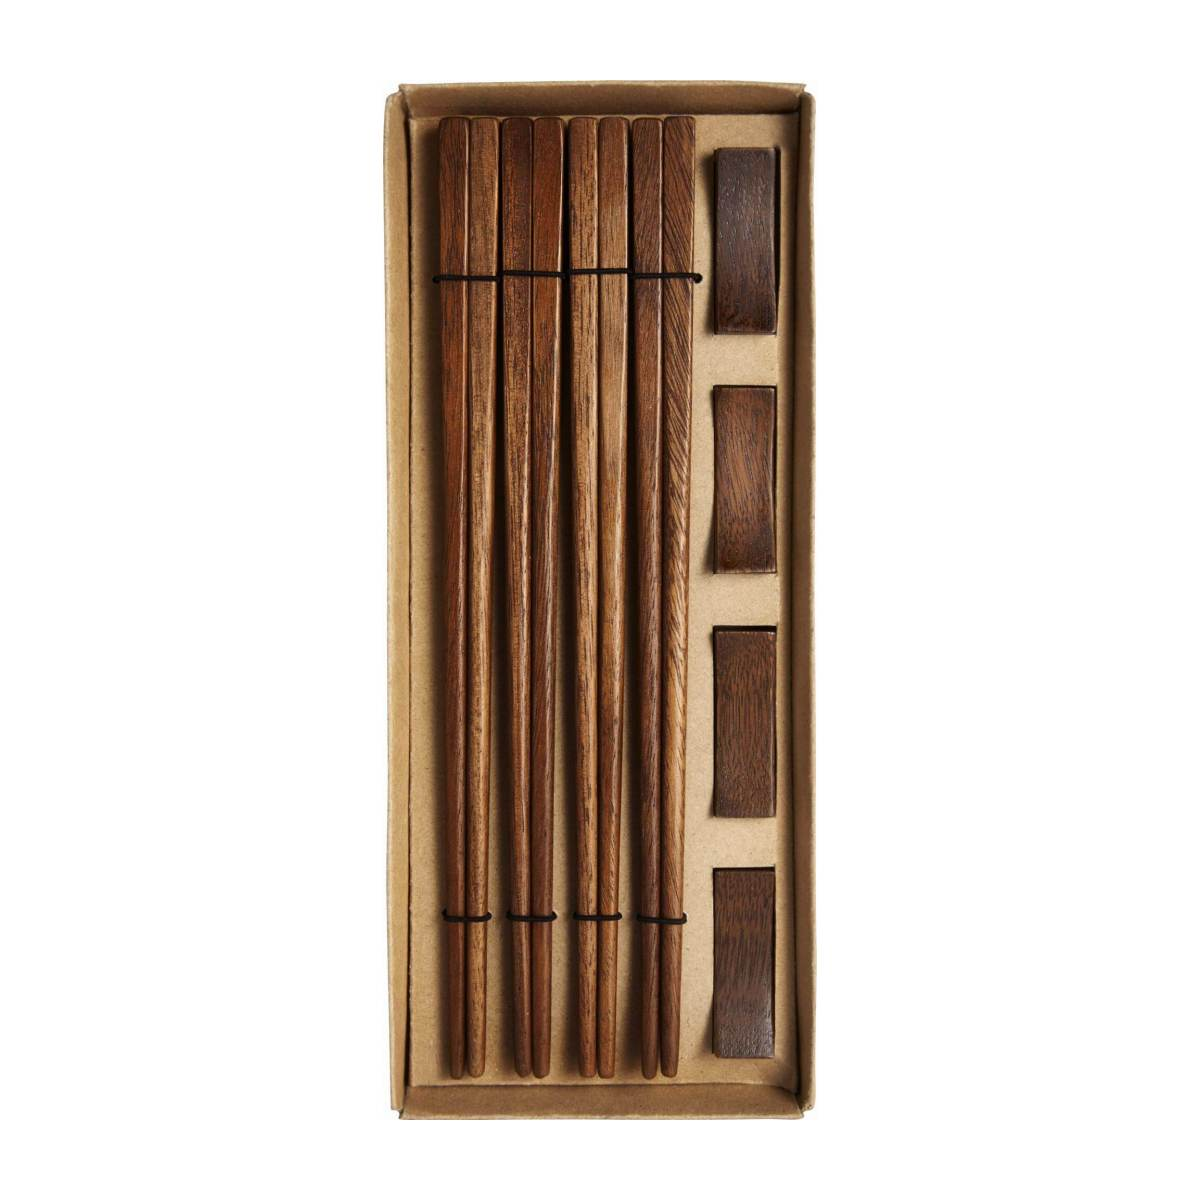 Acacia Chinese chopsticks n°5